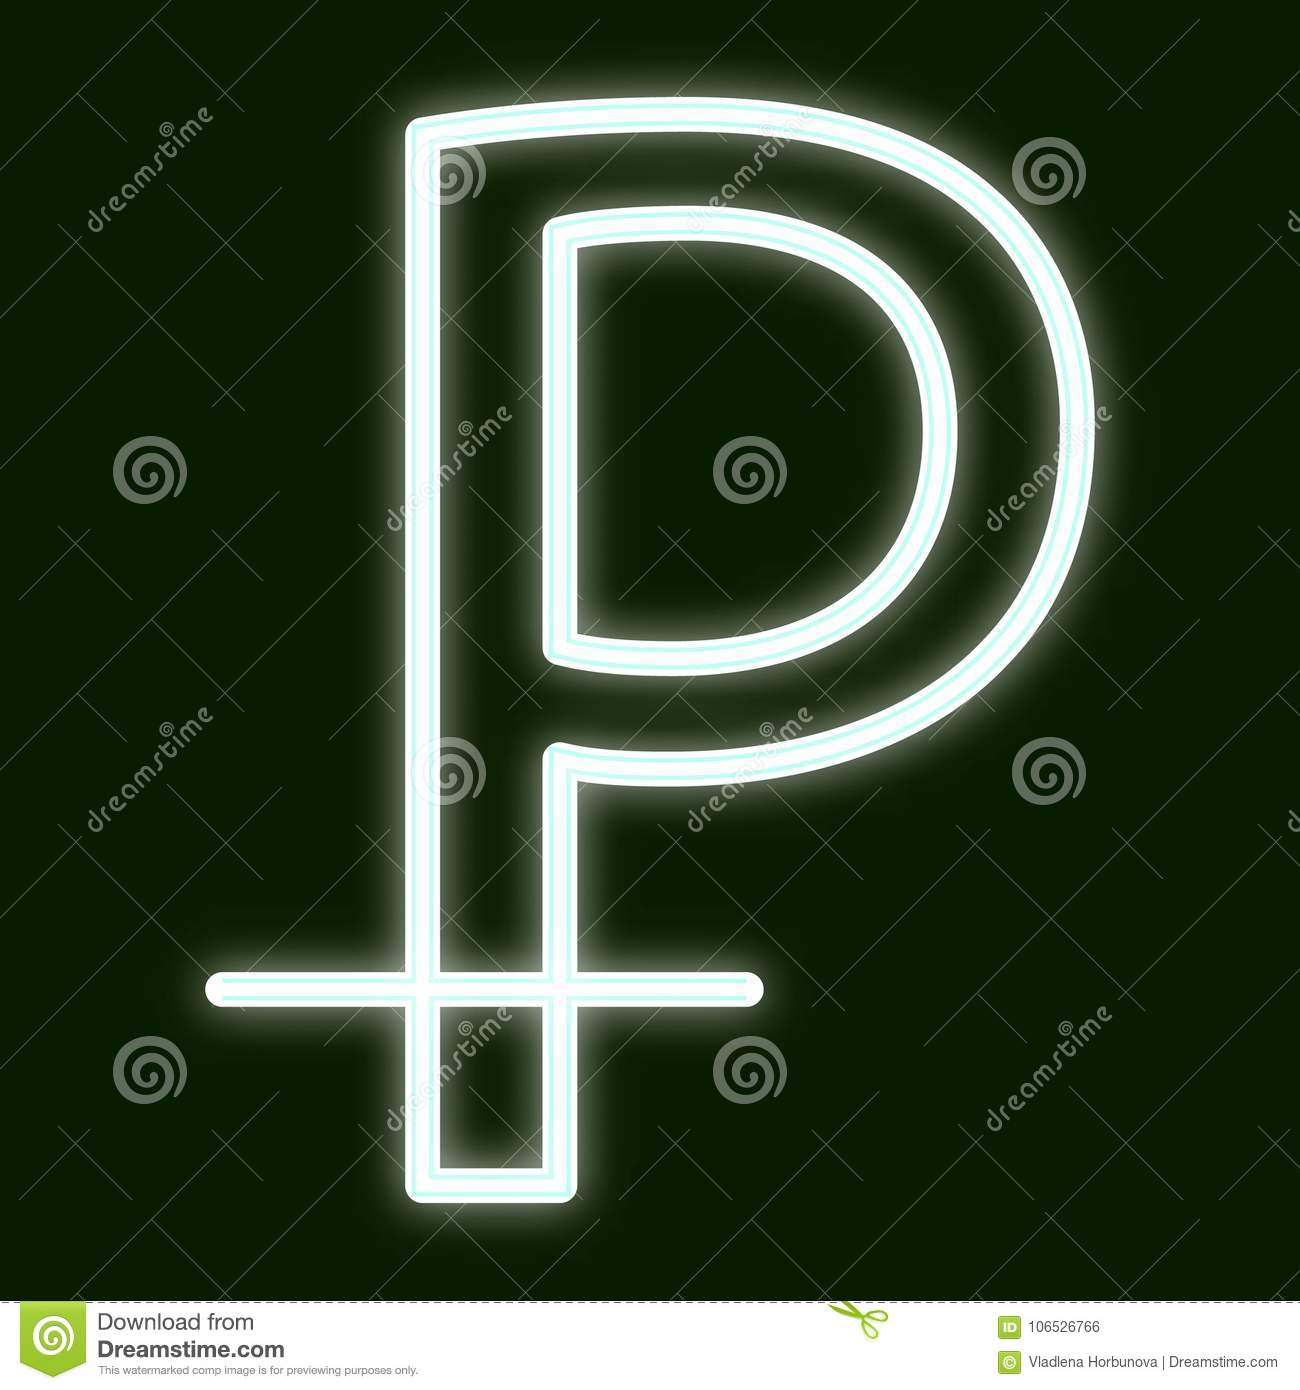 The Currency Symbol For The Russian Ruble With The Effect Of Neon